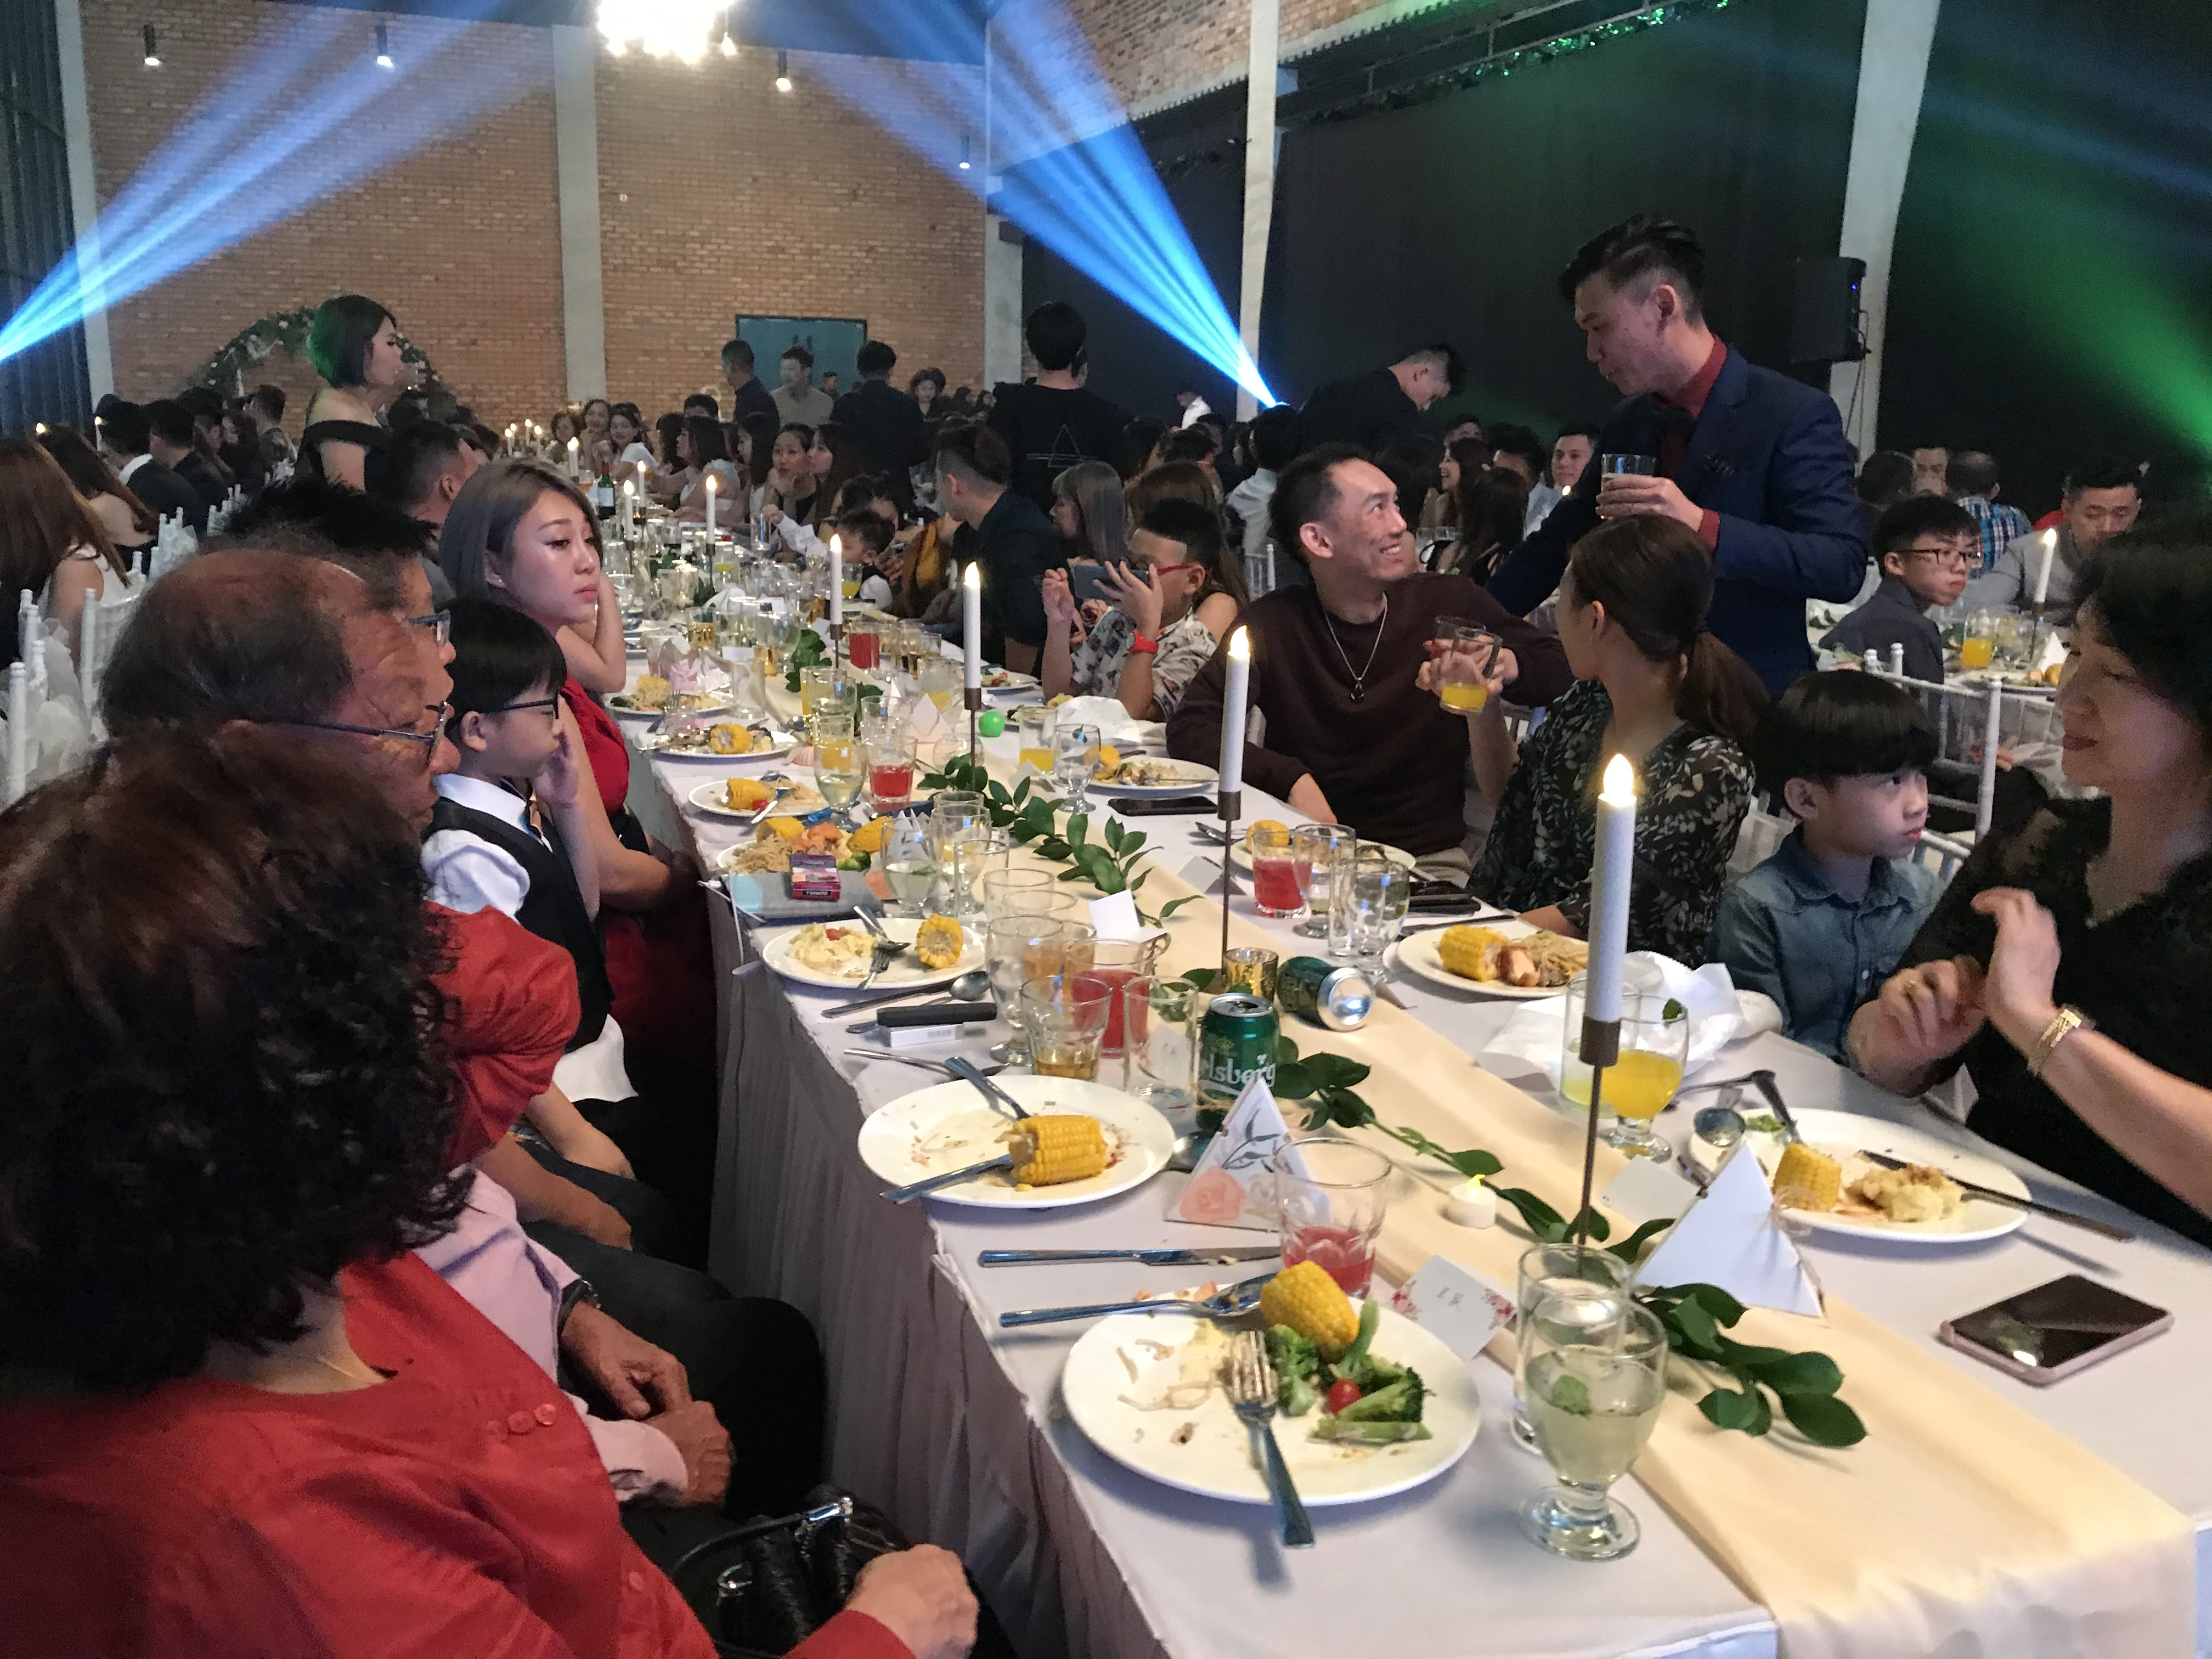 runningmen catering sit down menu event footage with people and lighting